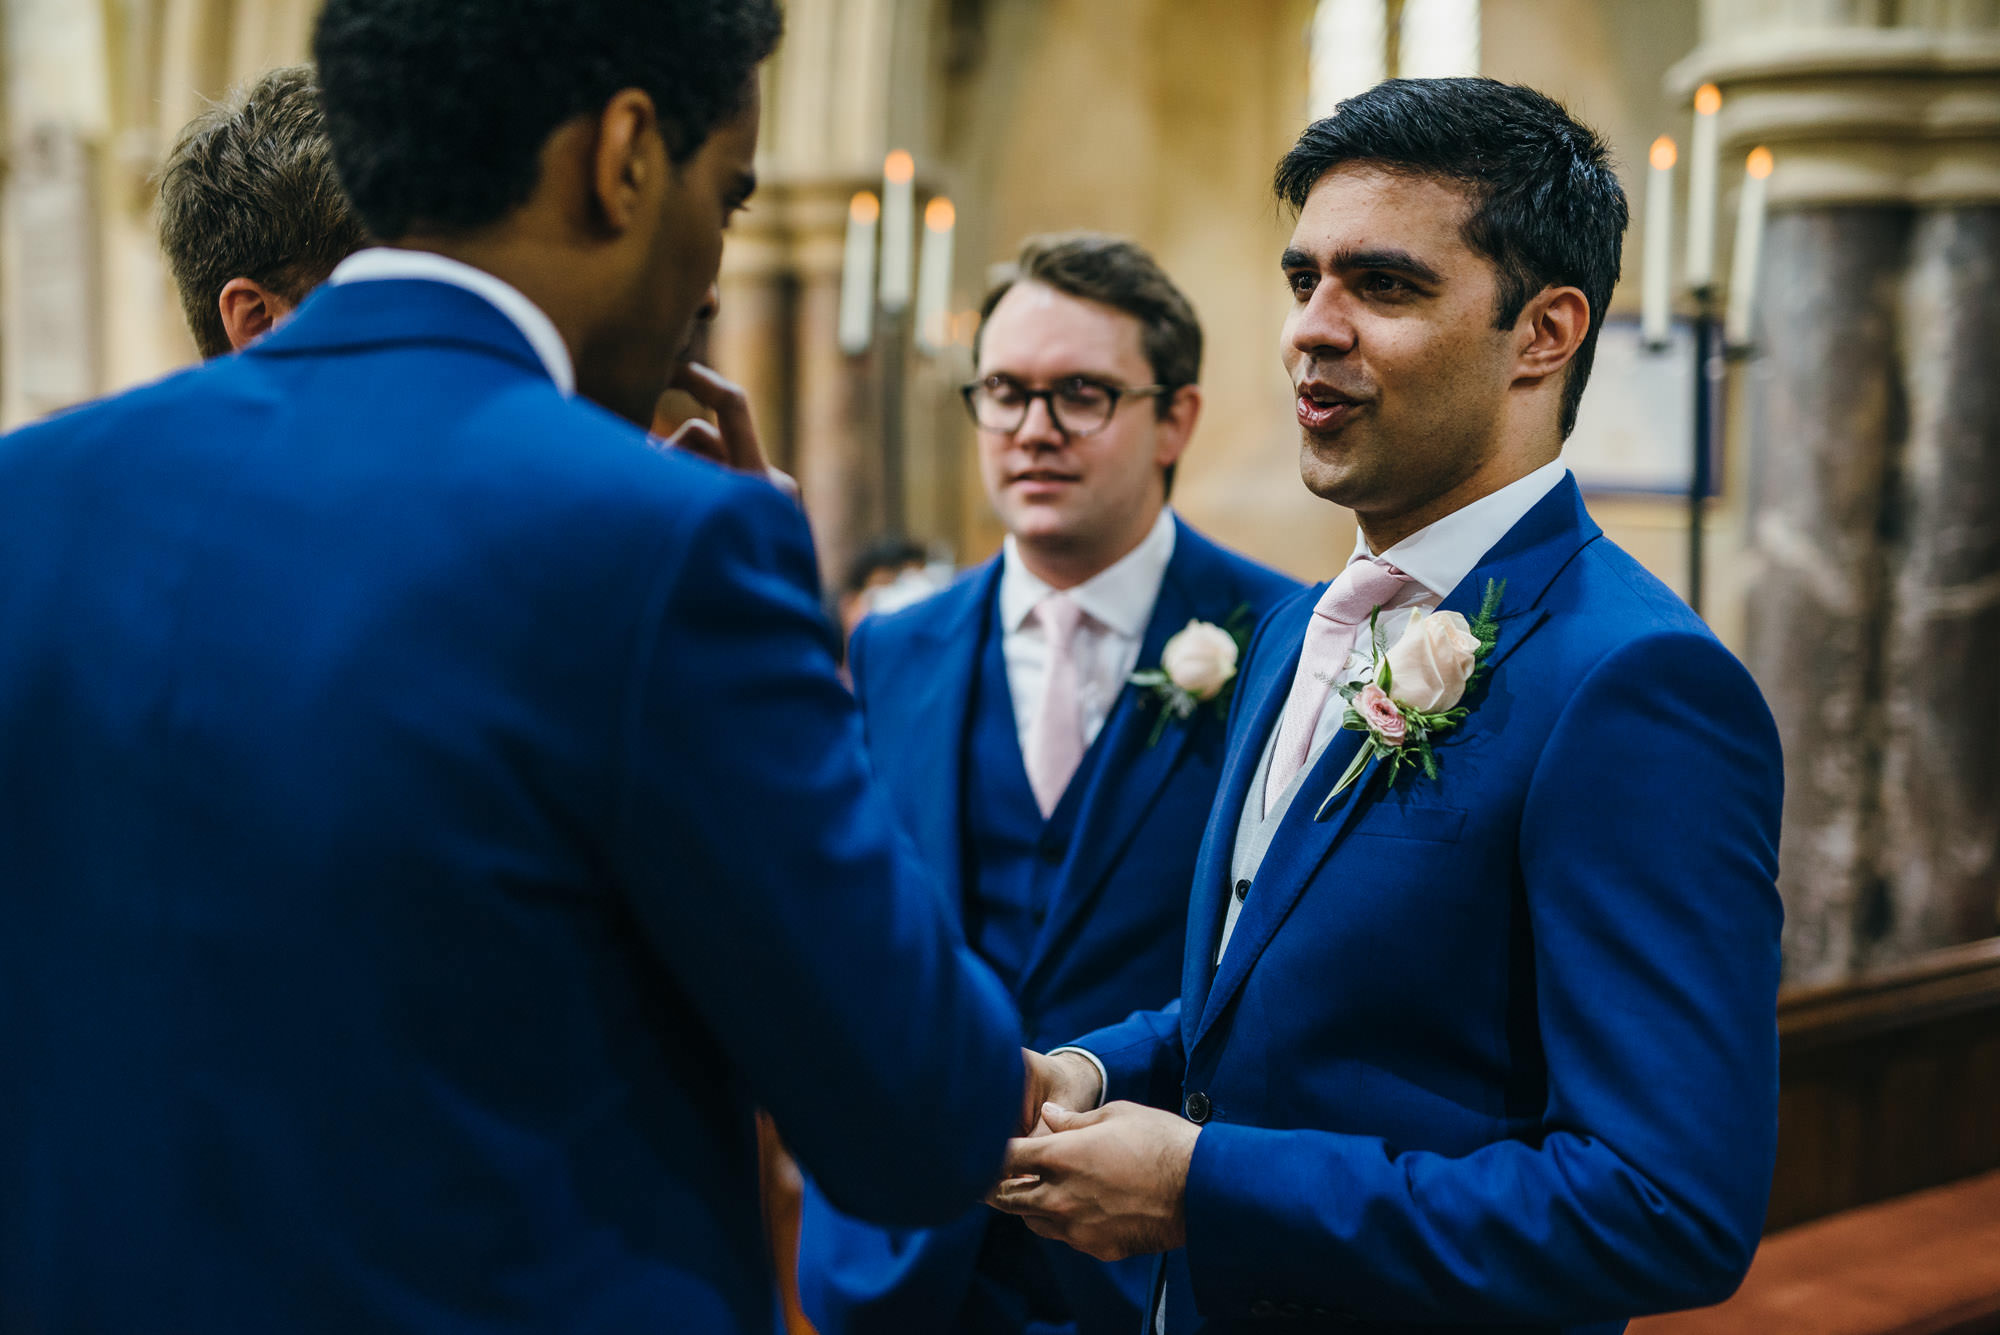 Groom at St Audries church